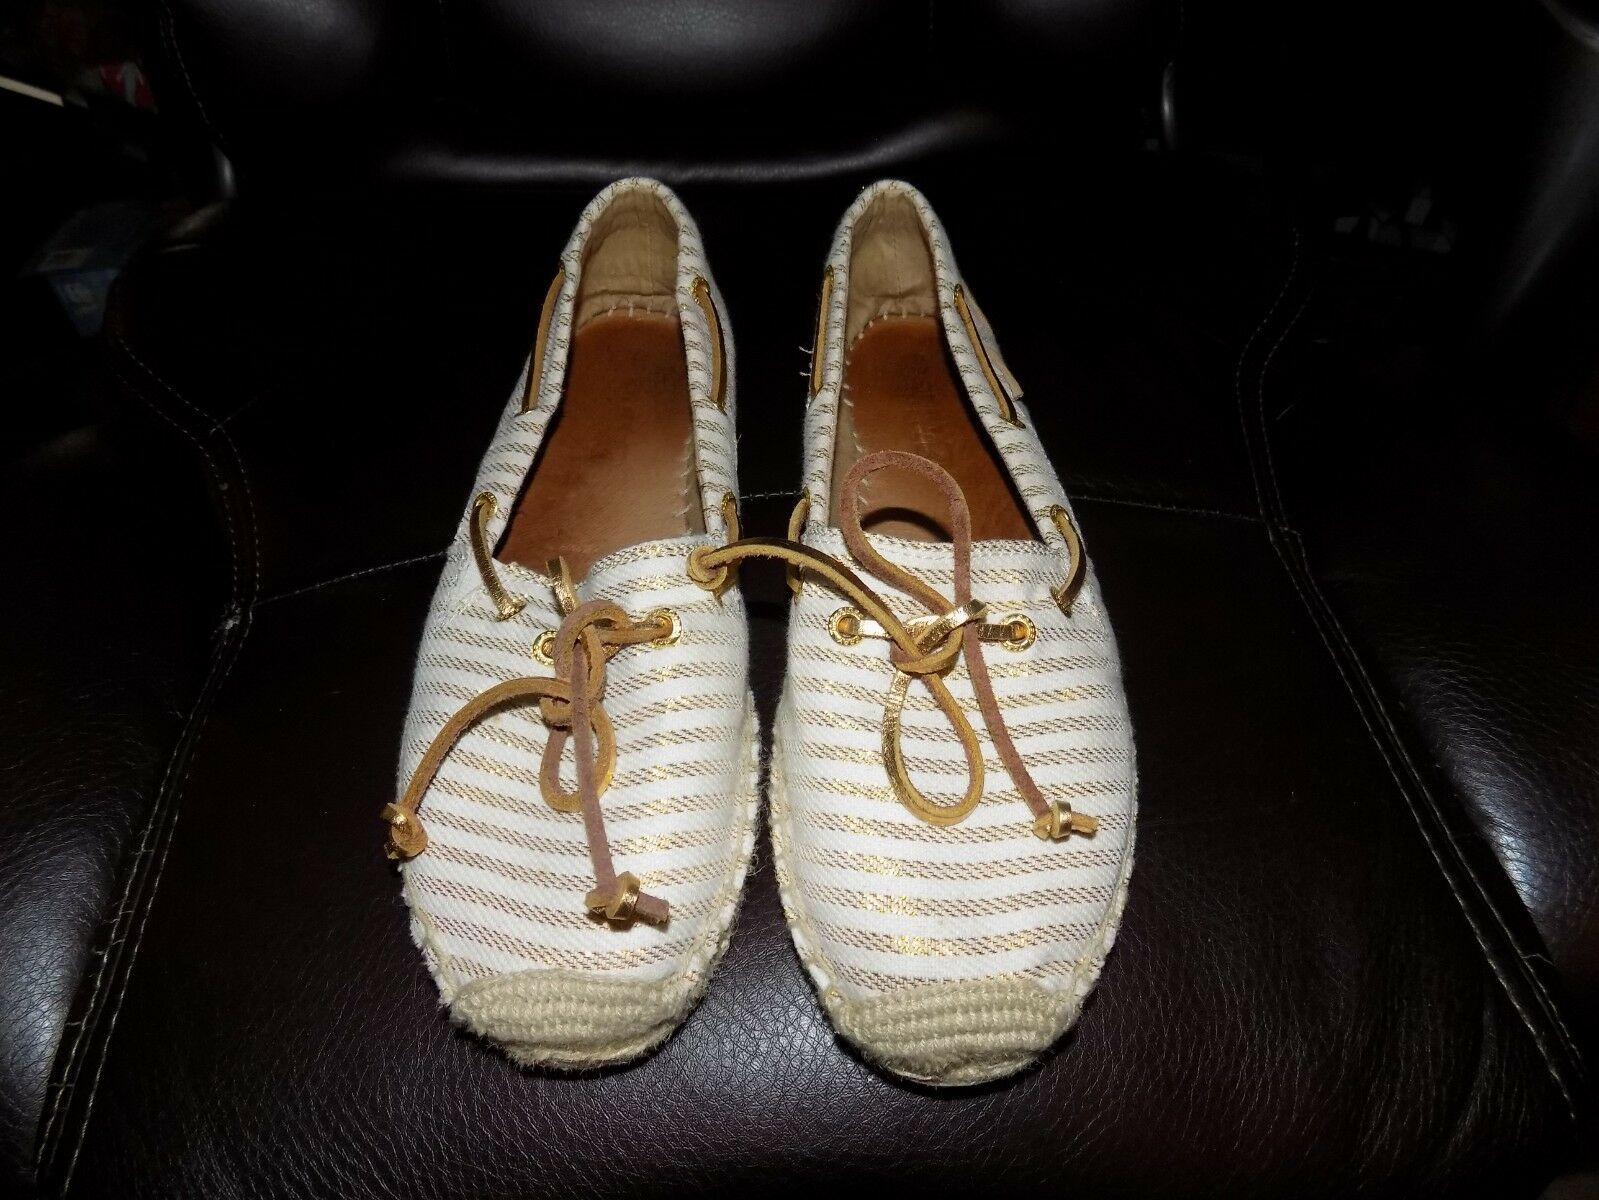 SPERRY Top-Sider KATAMA gold striped CANVAS Slip On Espadrille shoes Size 8.5